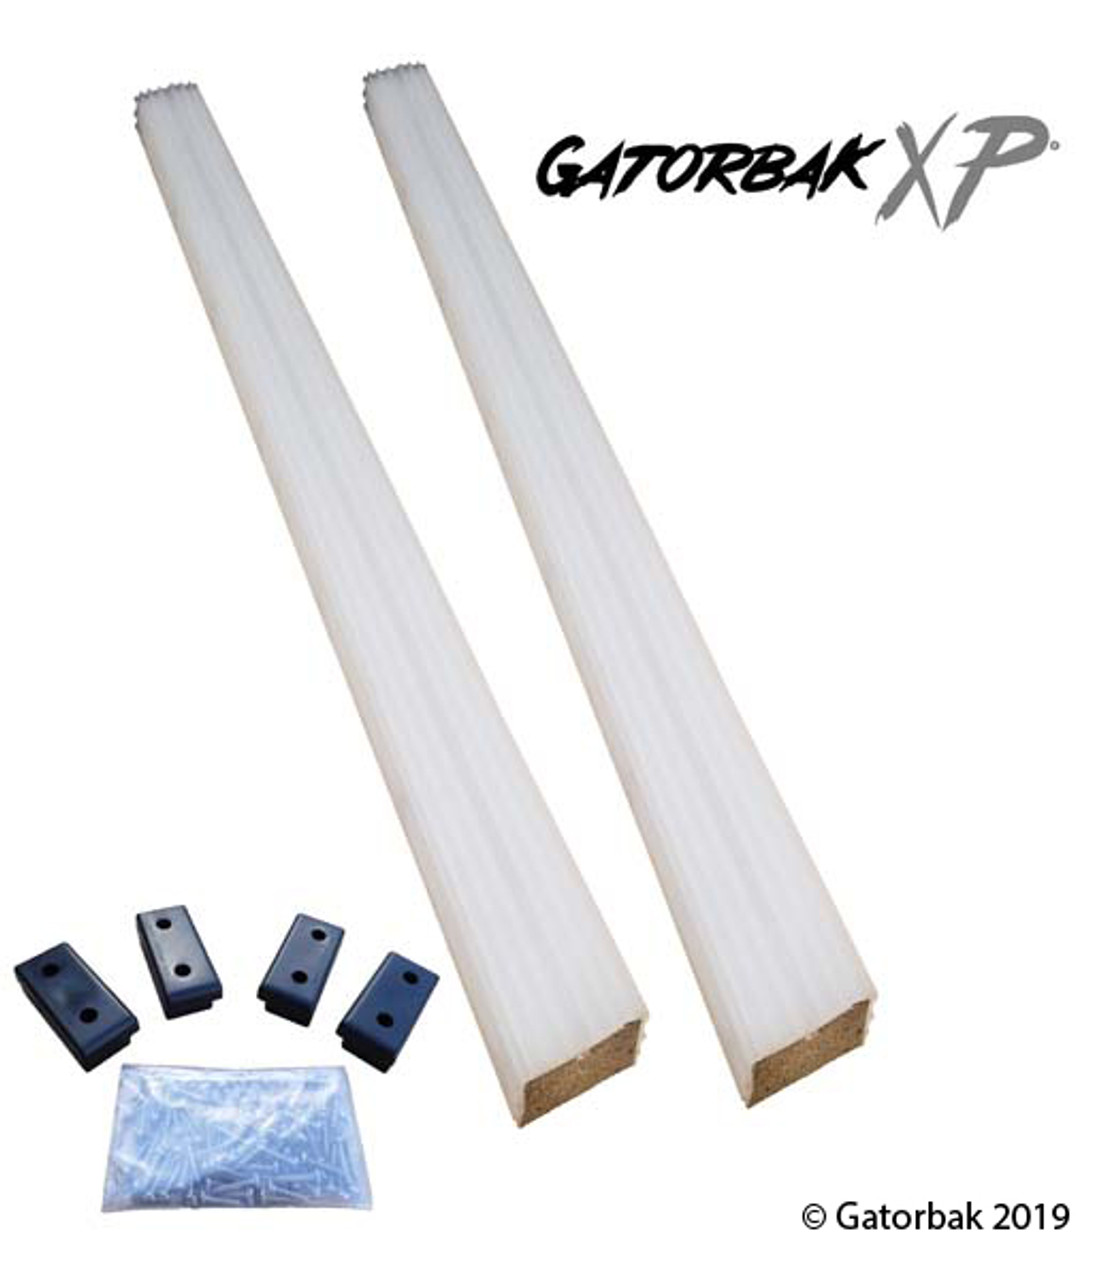 Regular 2x4 Flat GB350XP Kits